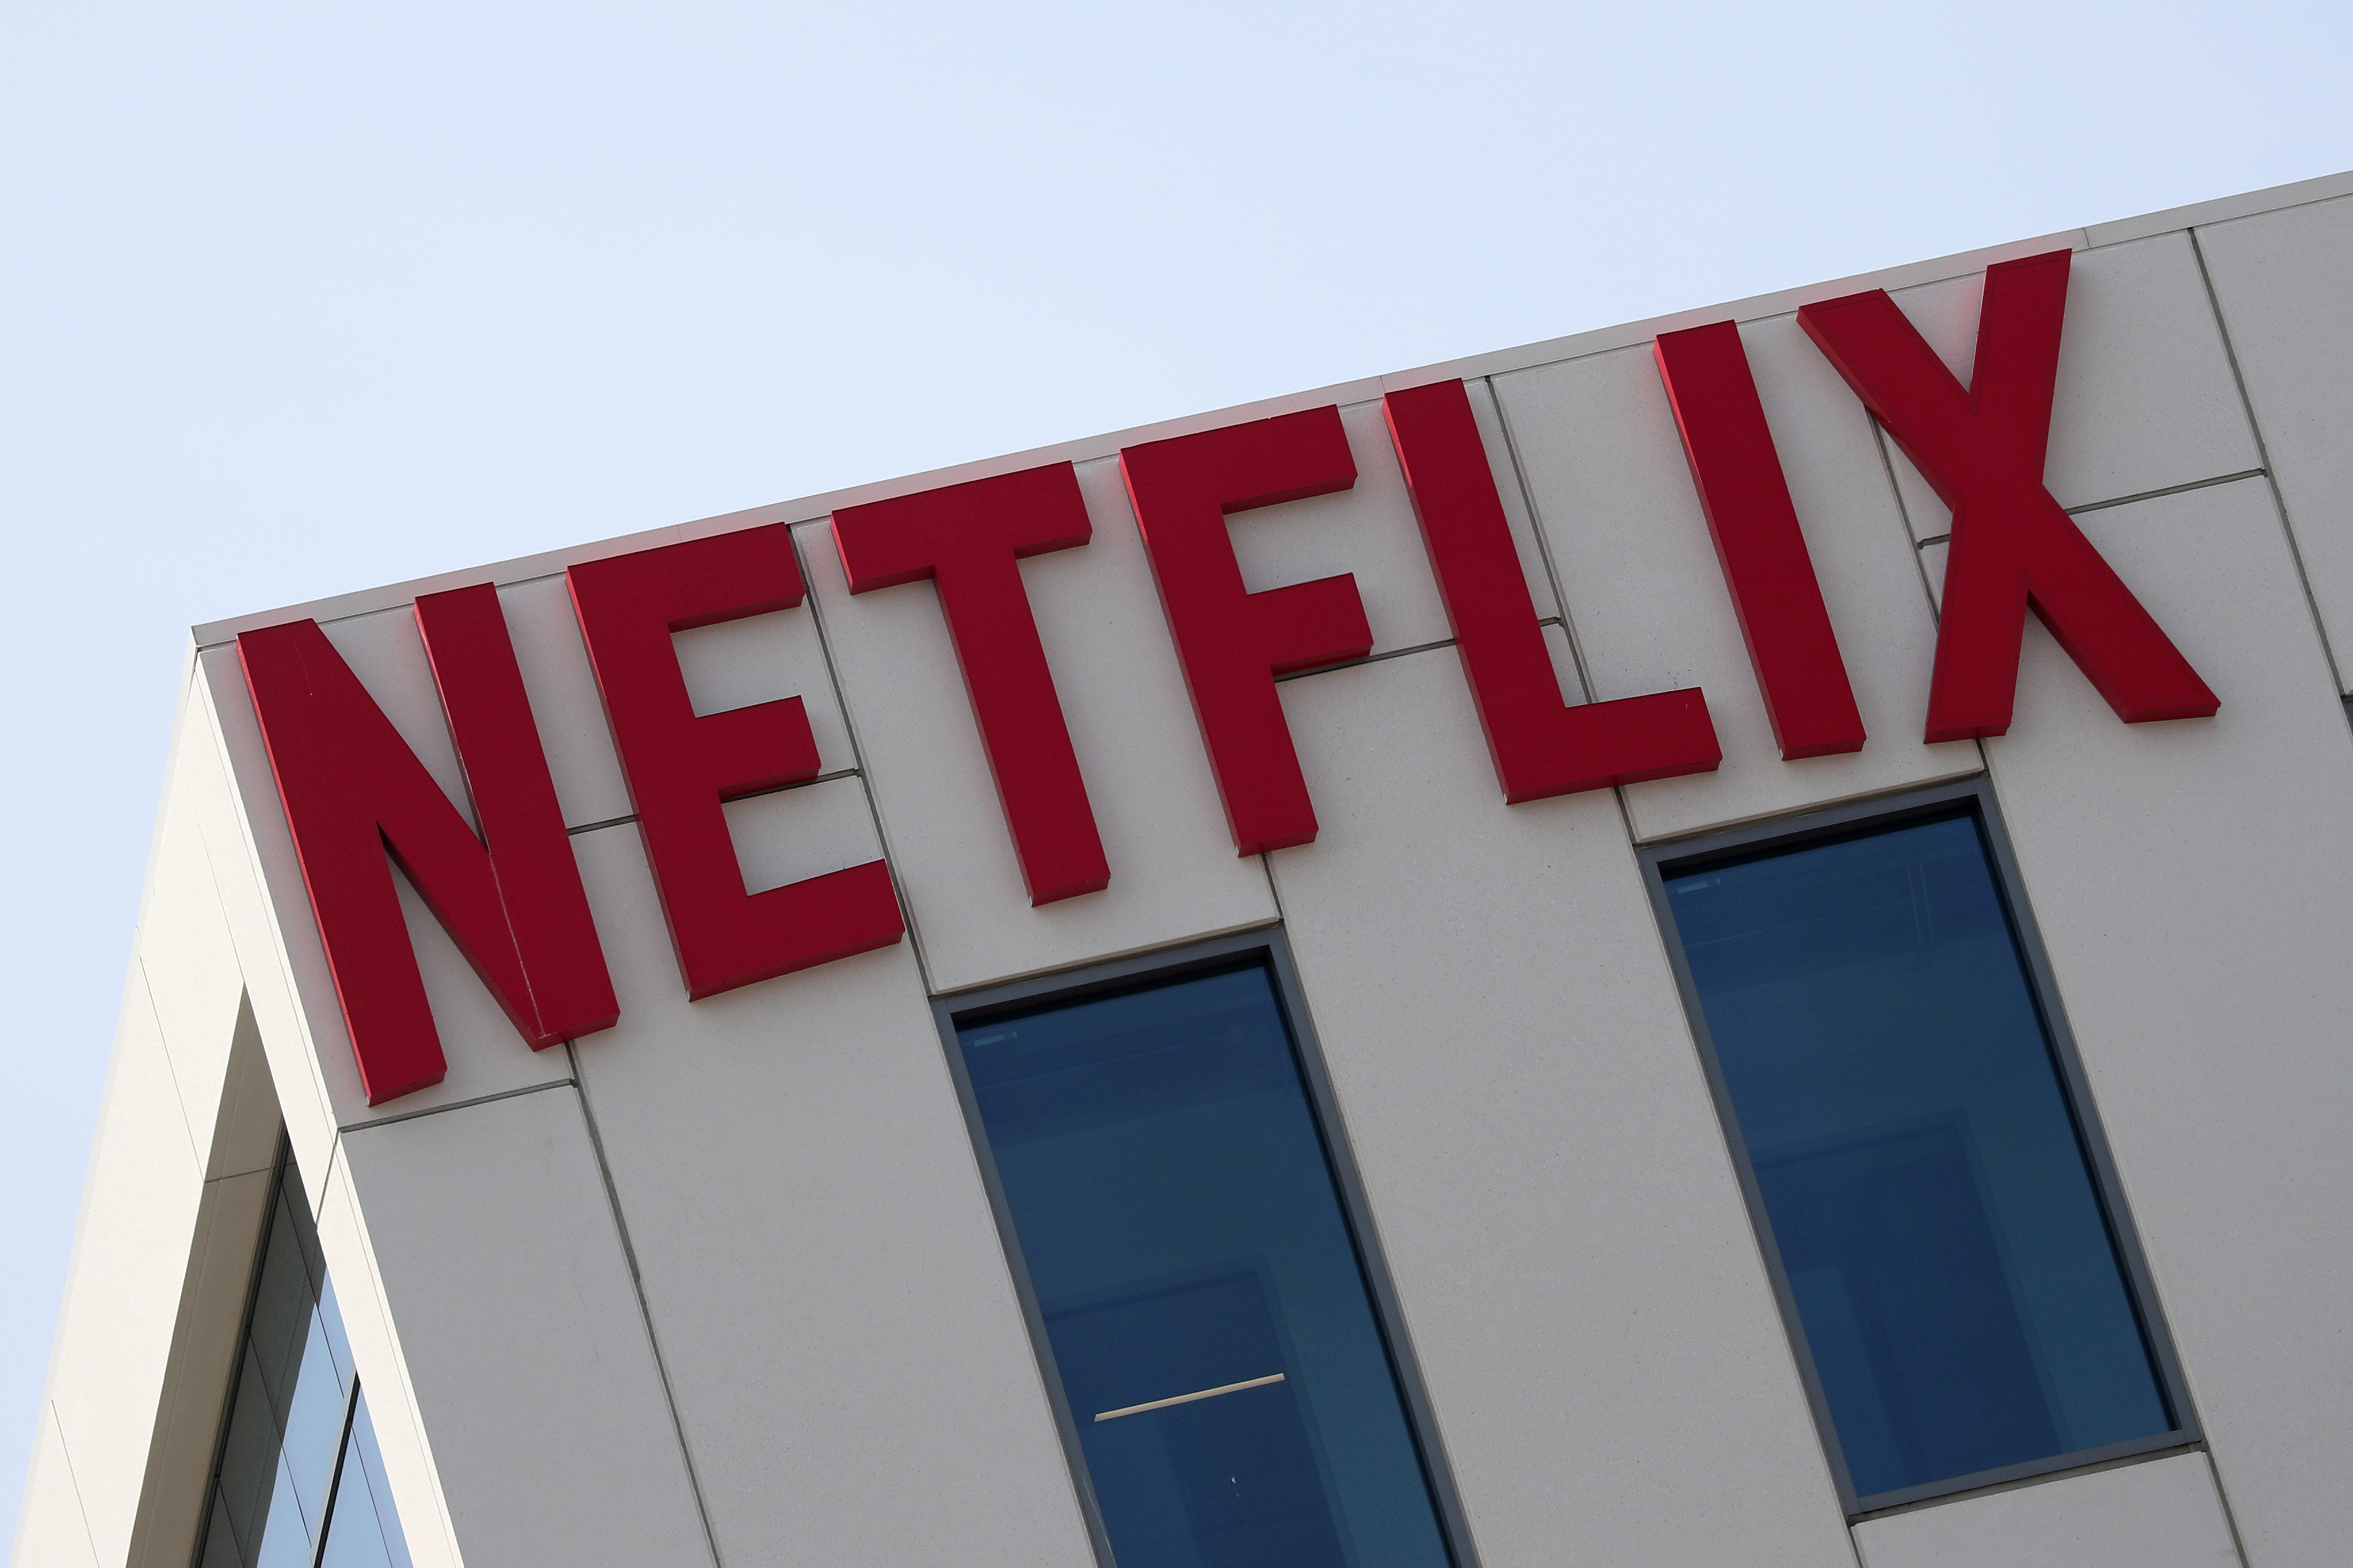 The Netflix logo is seen on their office in Hollywood, Los Angeles, California, U.S. July 16, 2018. REUTERS/Lucy Nicholson/File Photo